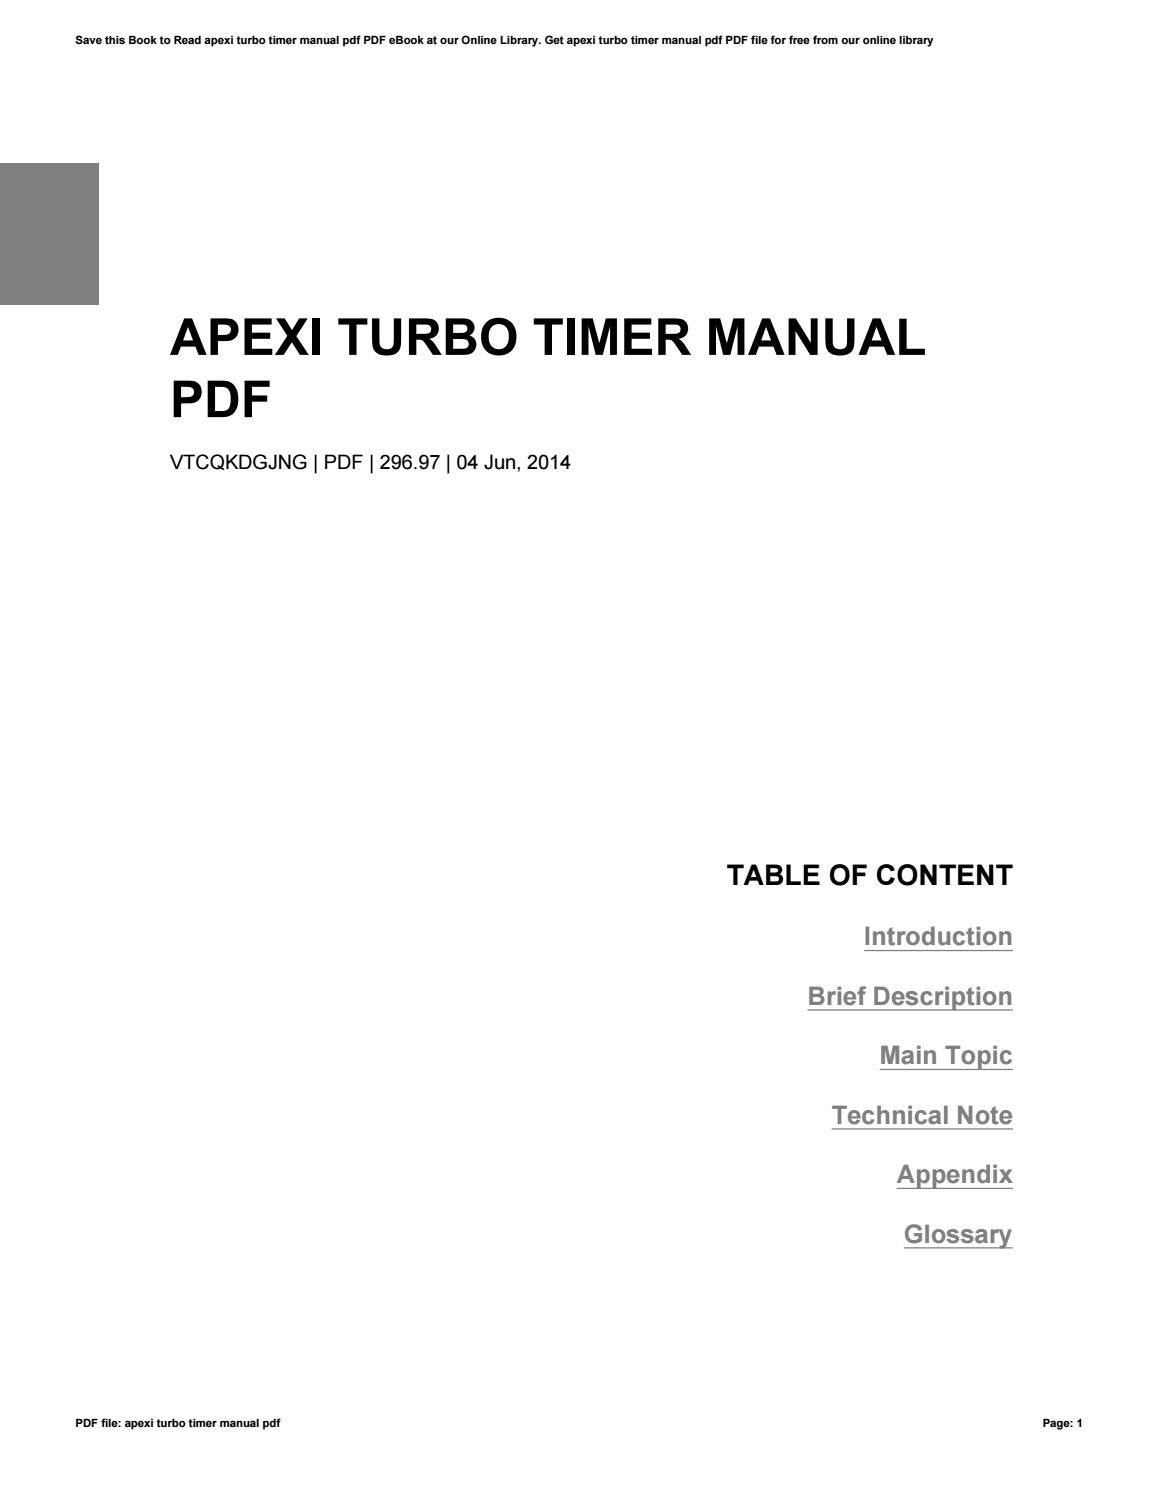 how to apexi tubo timer manual